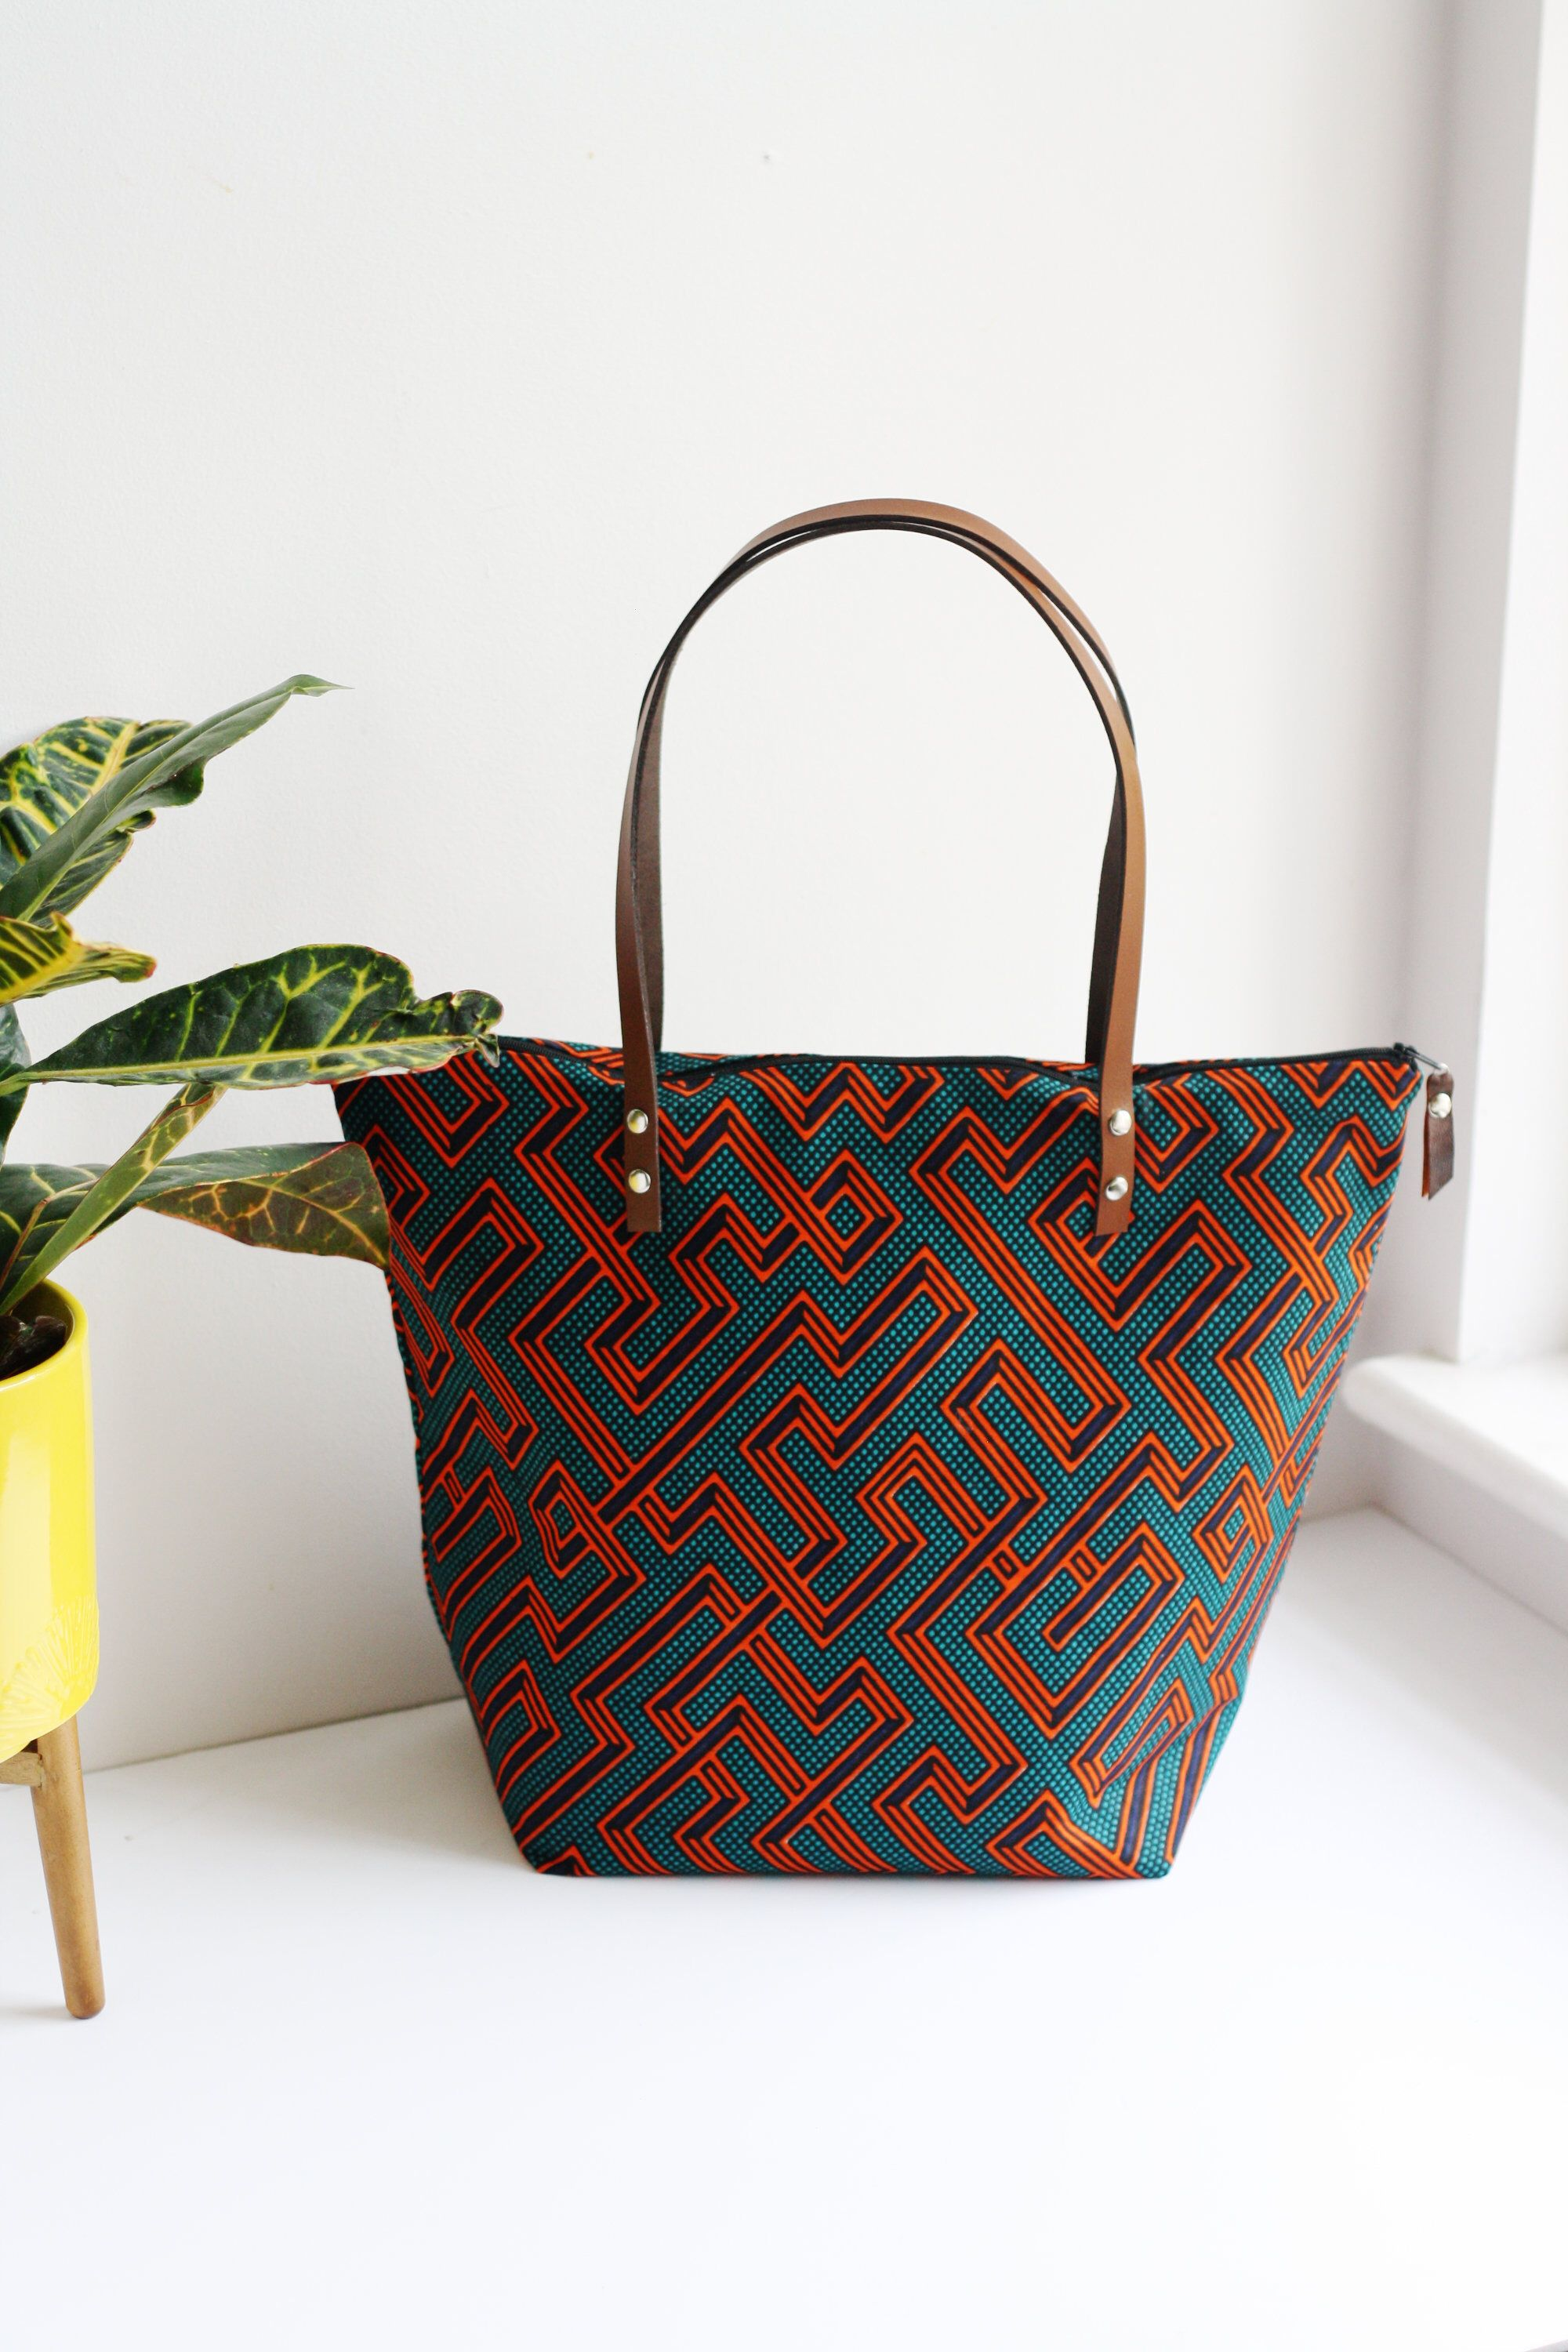 Ankara fabric tote bag shopper with leather handles